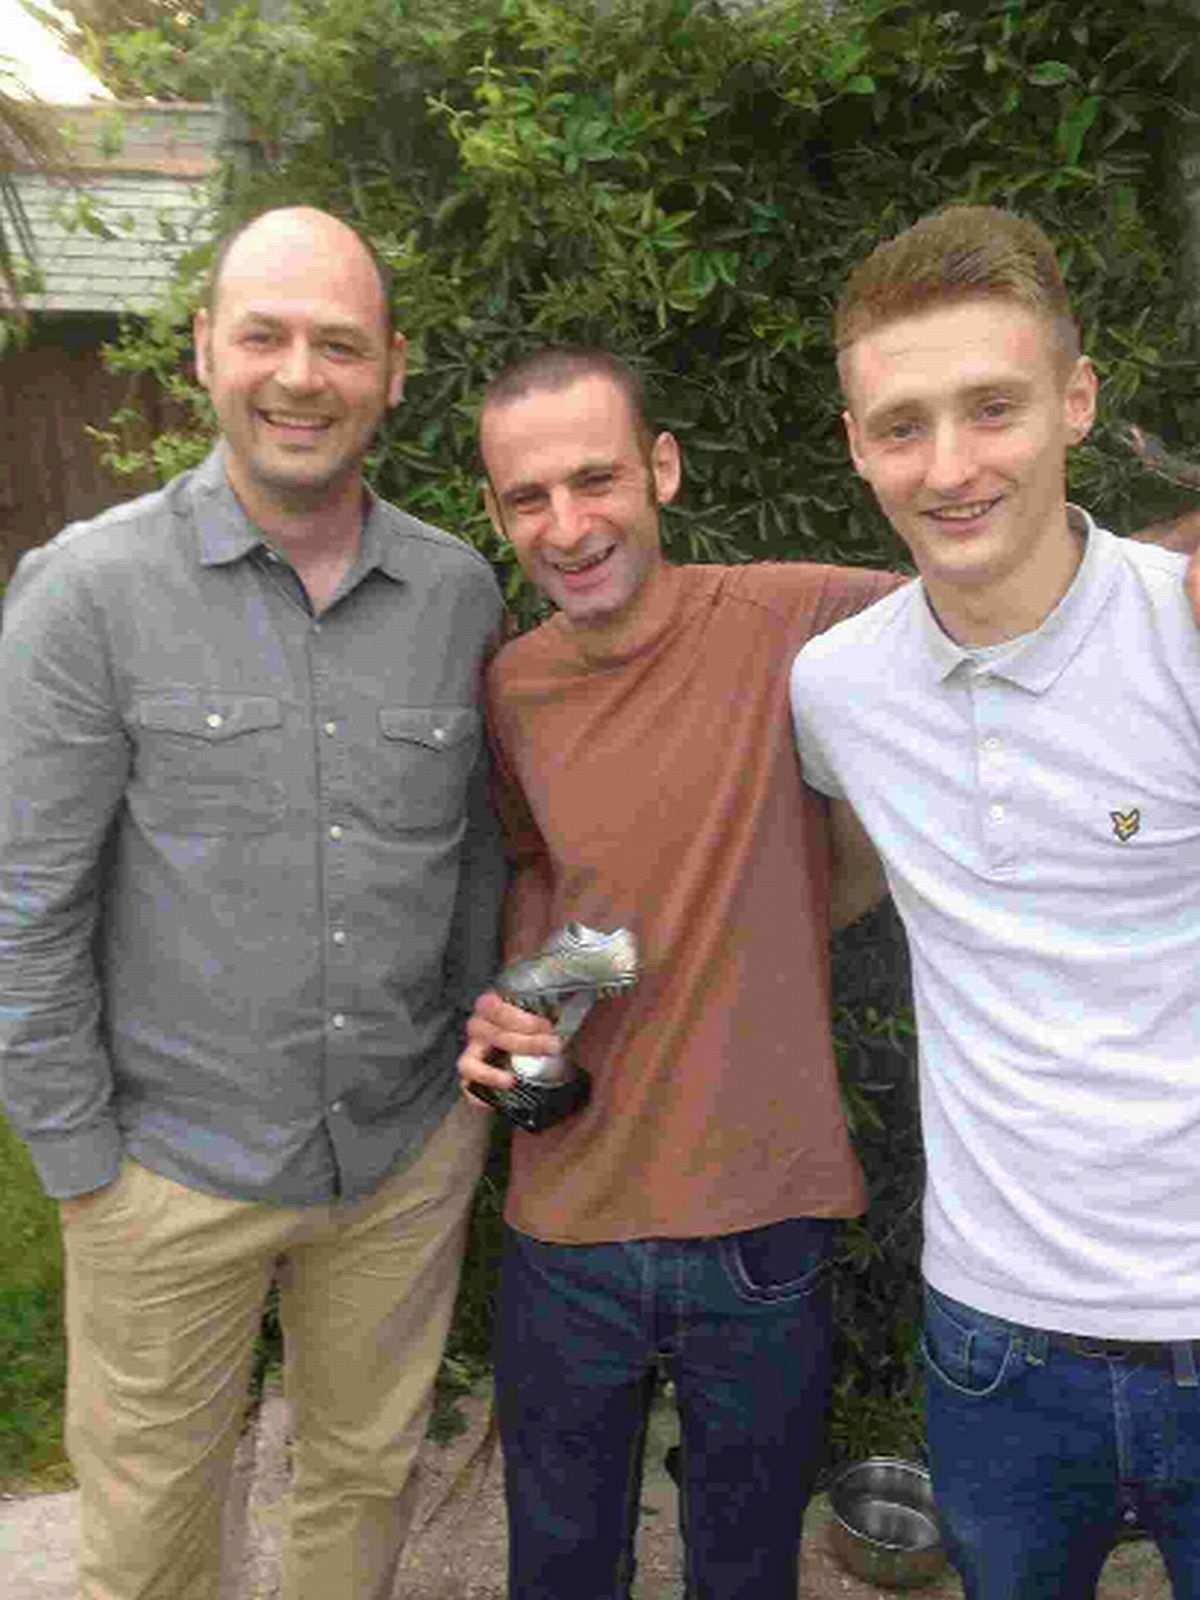 AWARDED: A team members Adam Sedwell, centre, and Luke Moorley, right, with manager Pete Williams